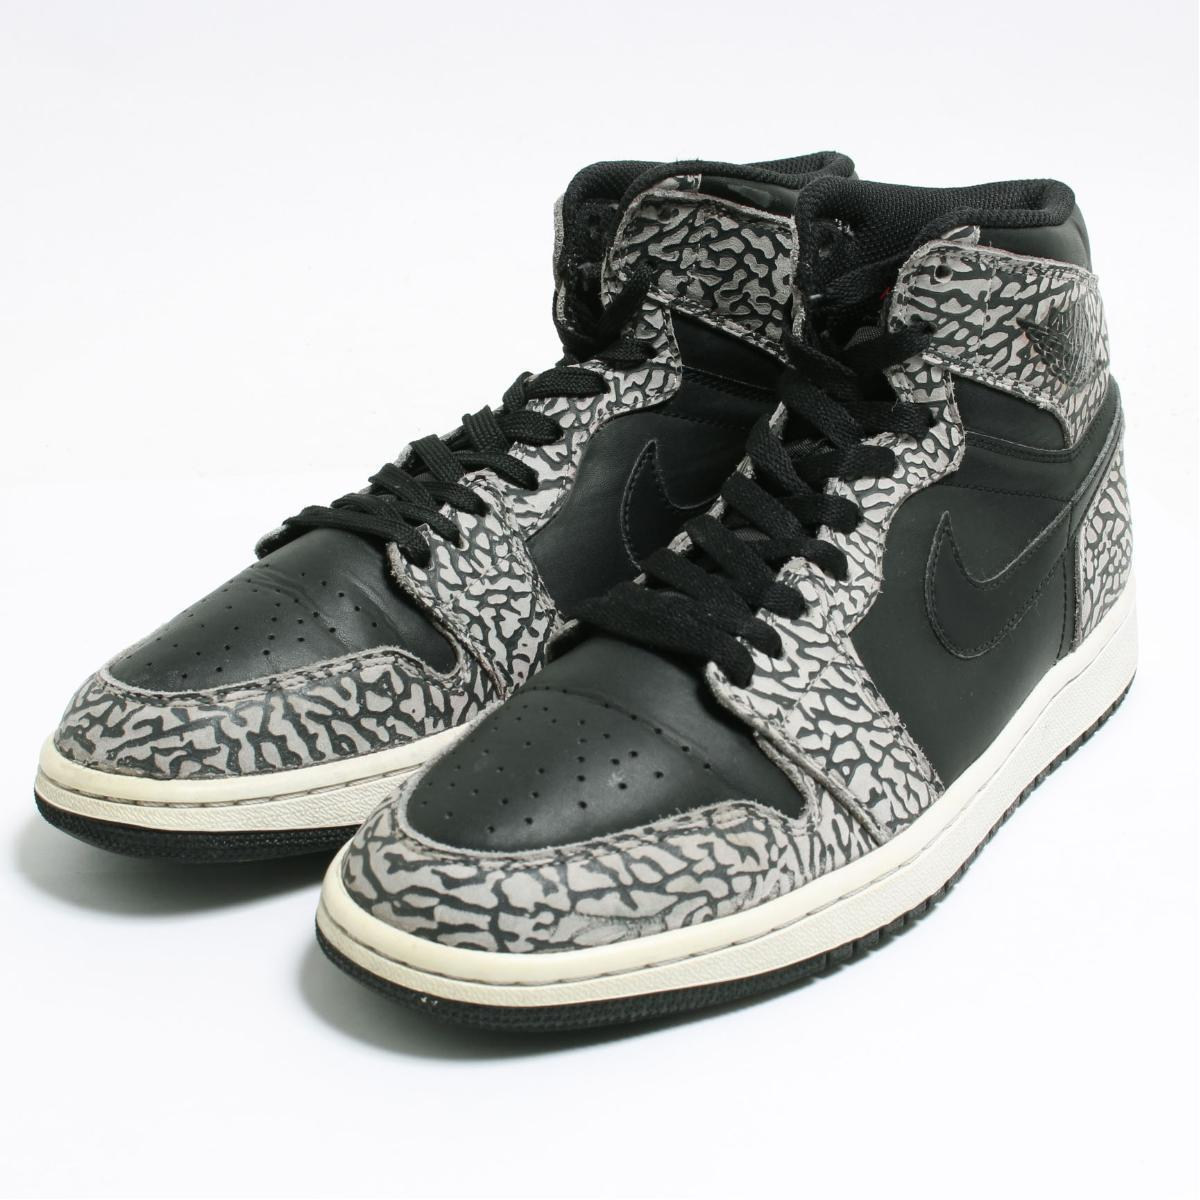 Air Jordan 1 Vintage Air Max Newest Shoes  73c1f1307